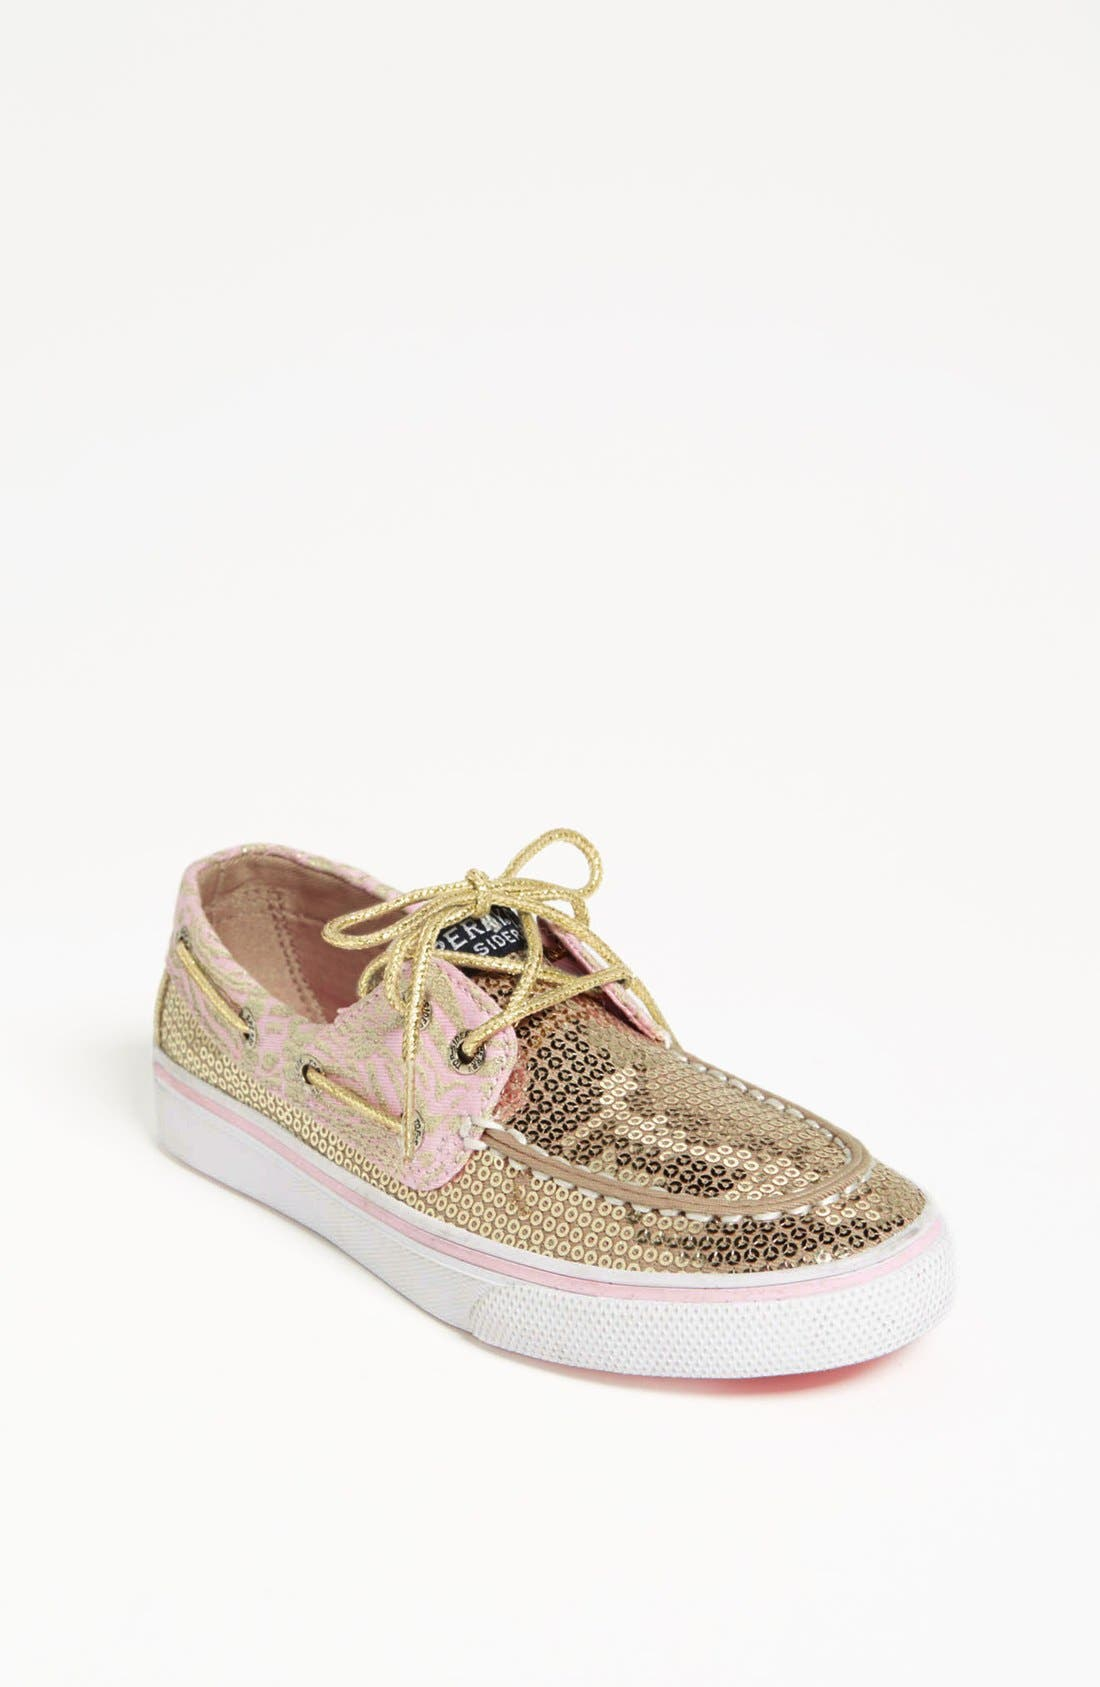 Main Image - Sperry Top-Sider® Kids 'Bahama' Slip-On (Walker, Toddler, Little Kid & Big Kid)